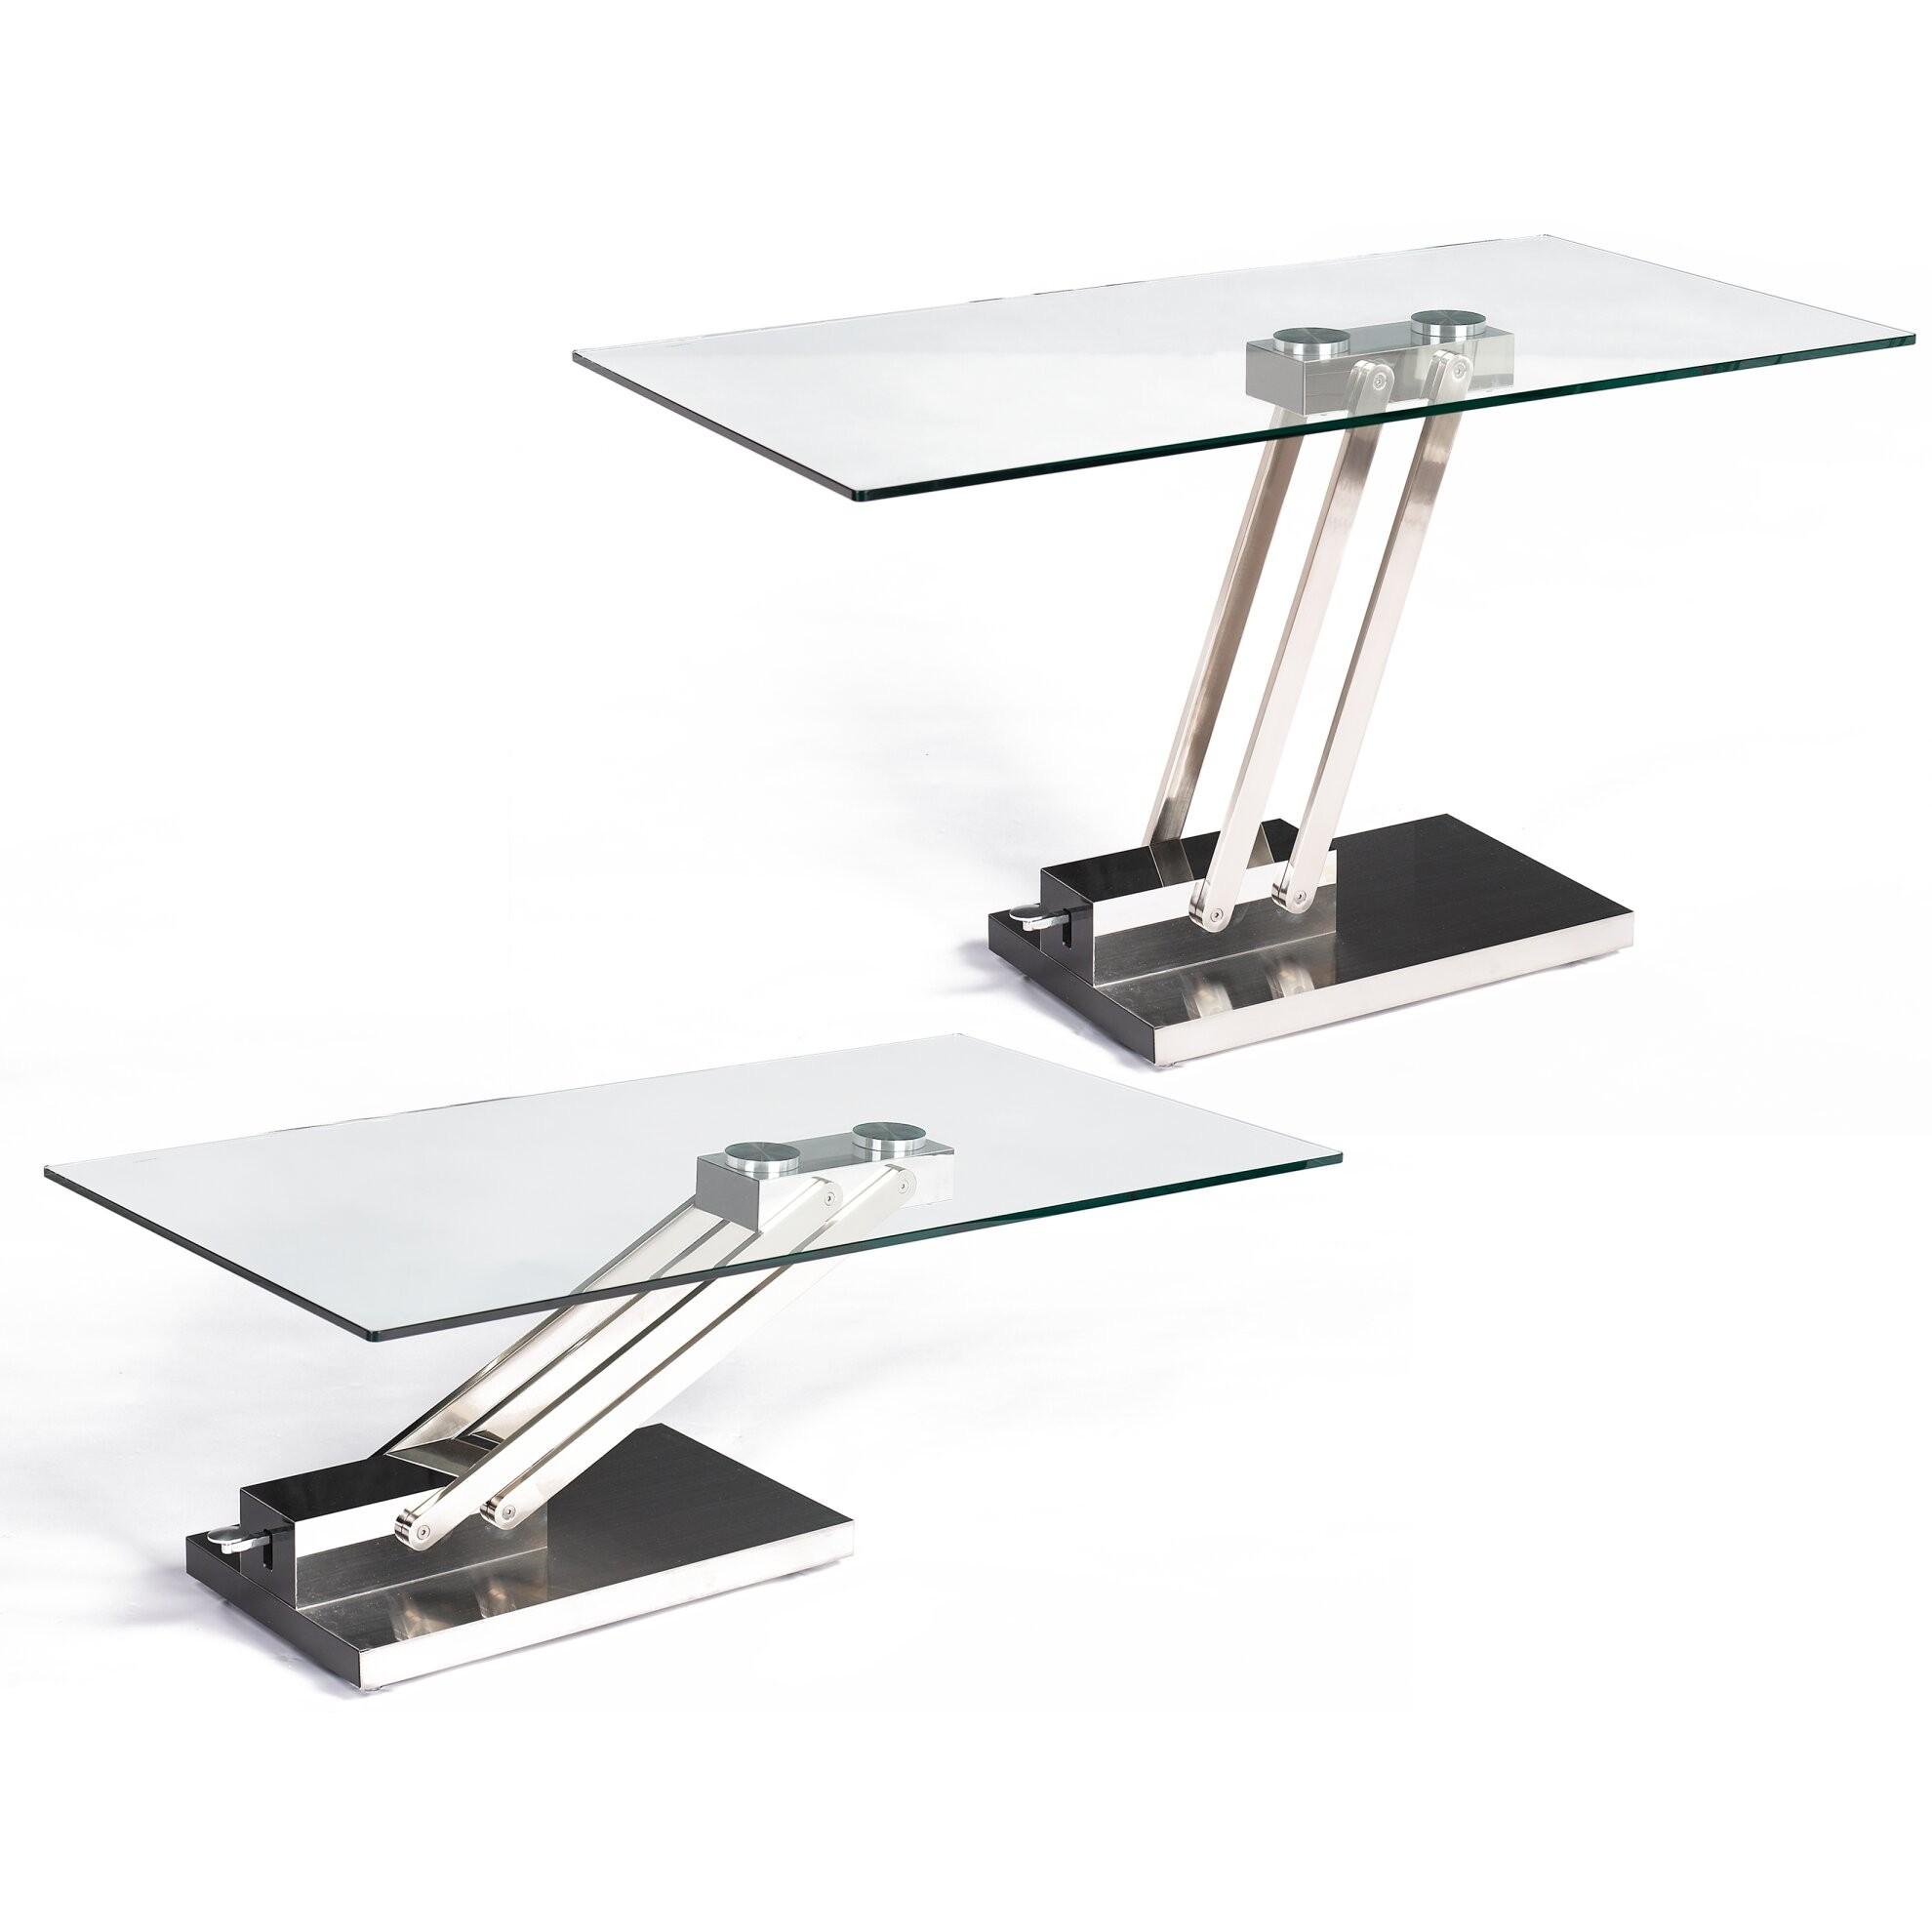 Adjustable Height Coffee Tables 2